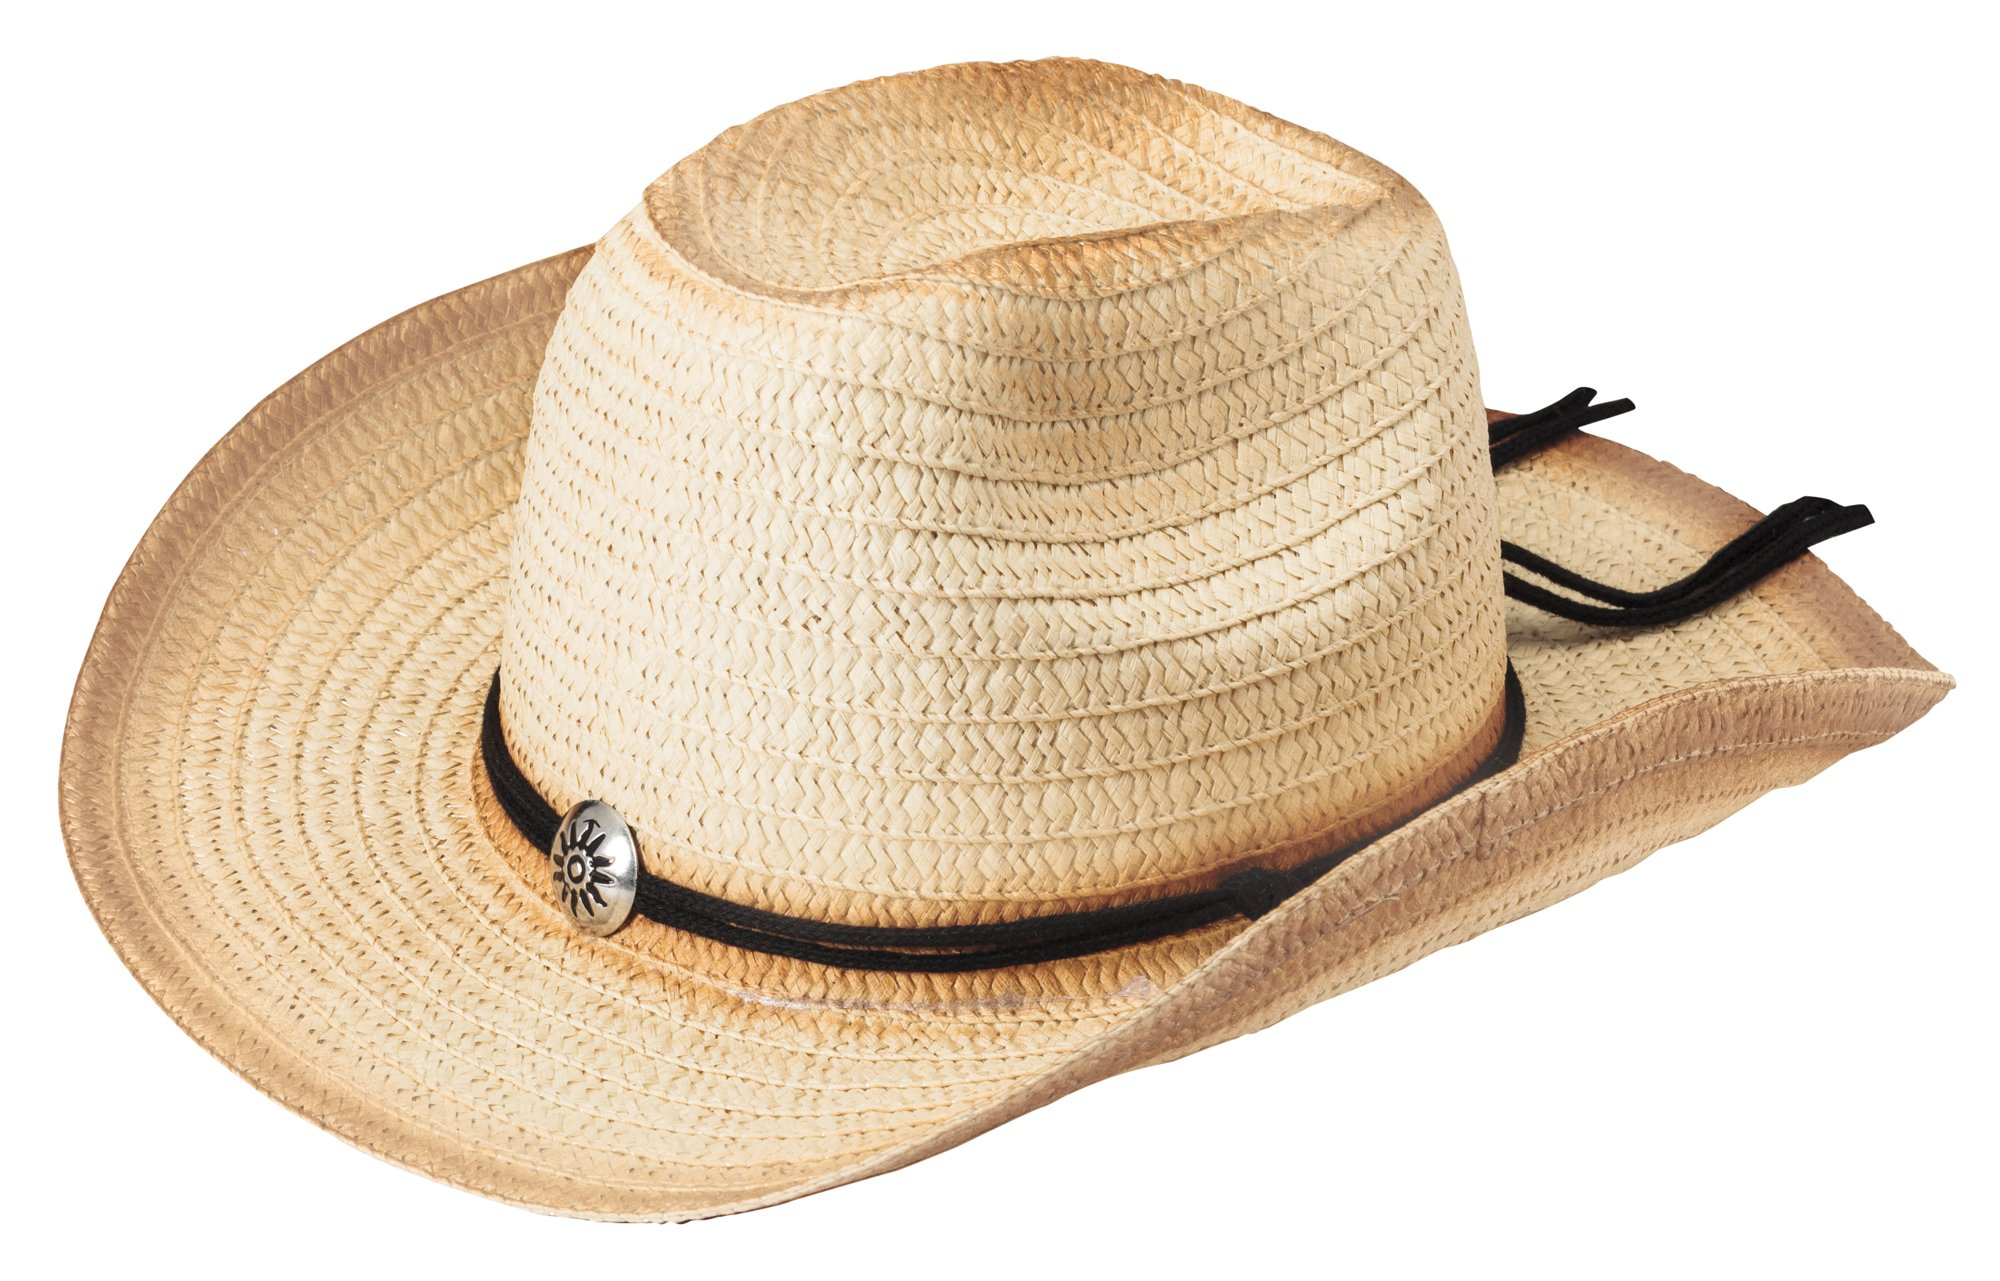 The Paragon Women's Cowboy Hat - Western Woven Straw with Adjustable Brim